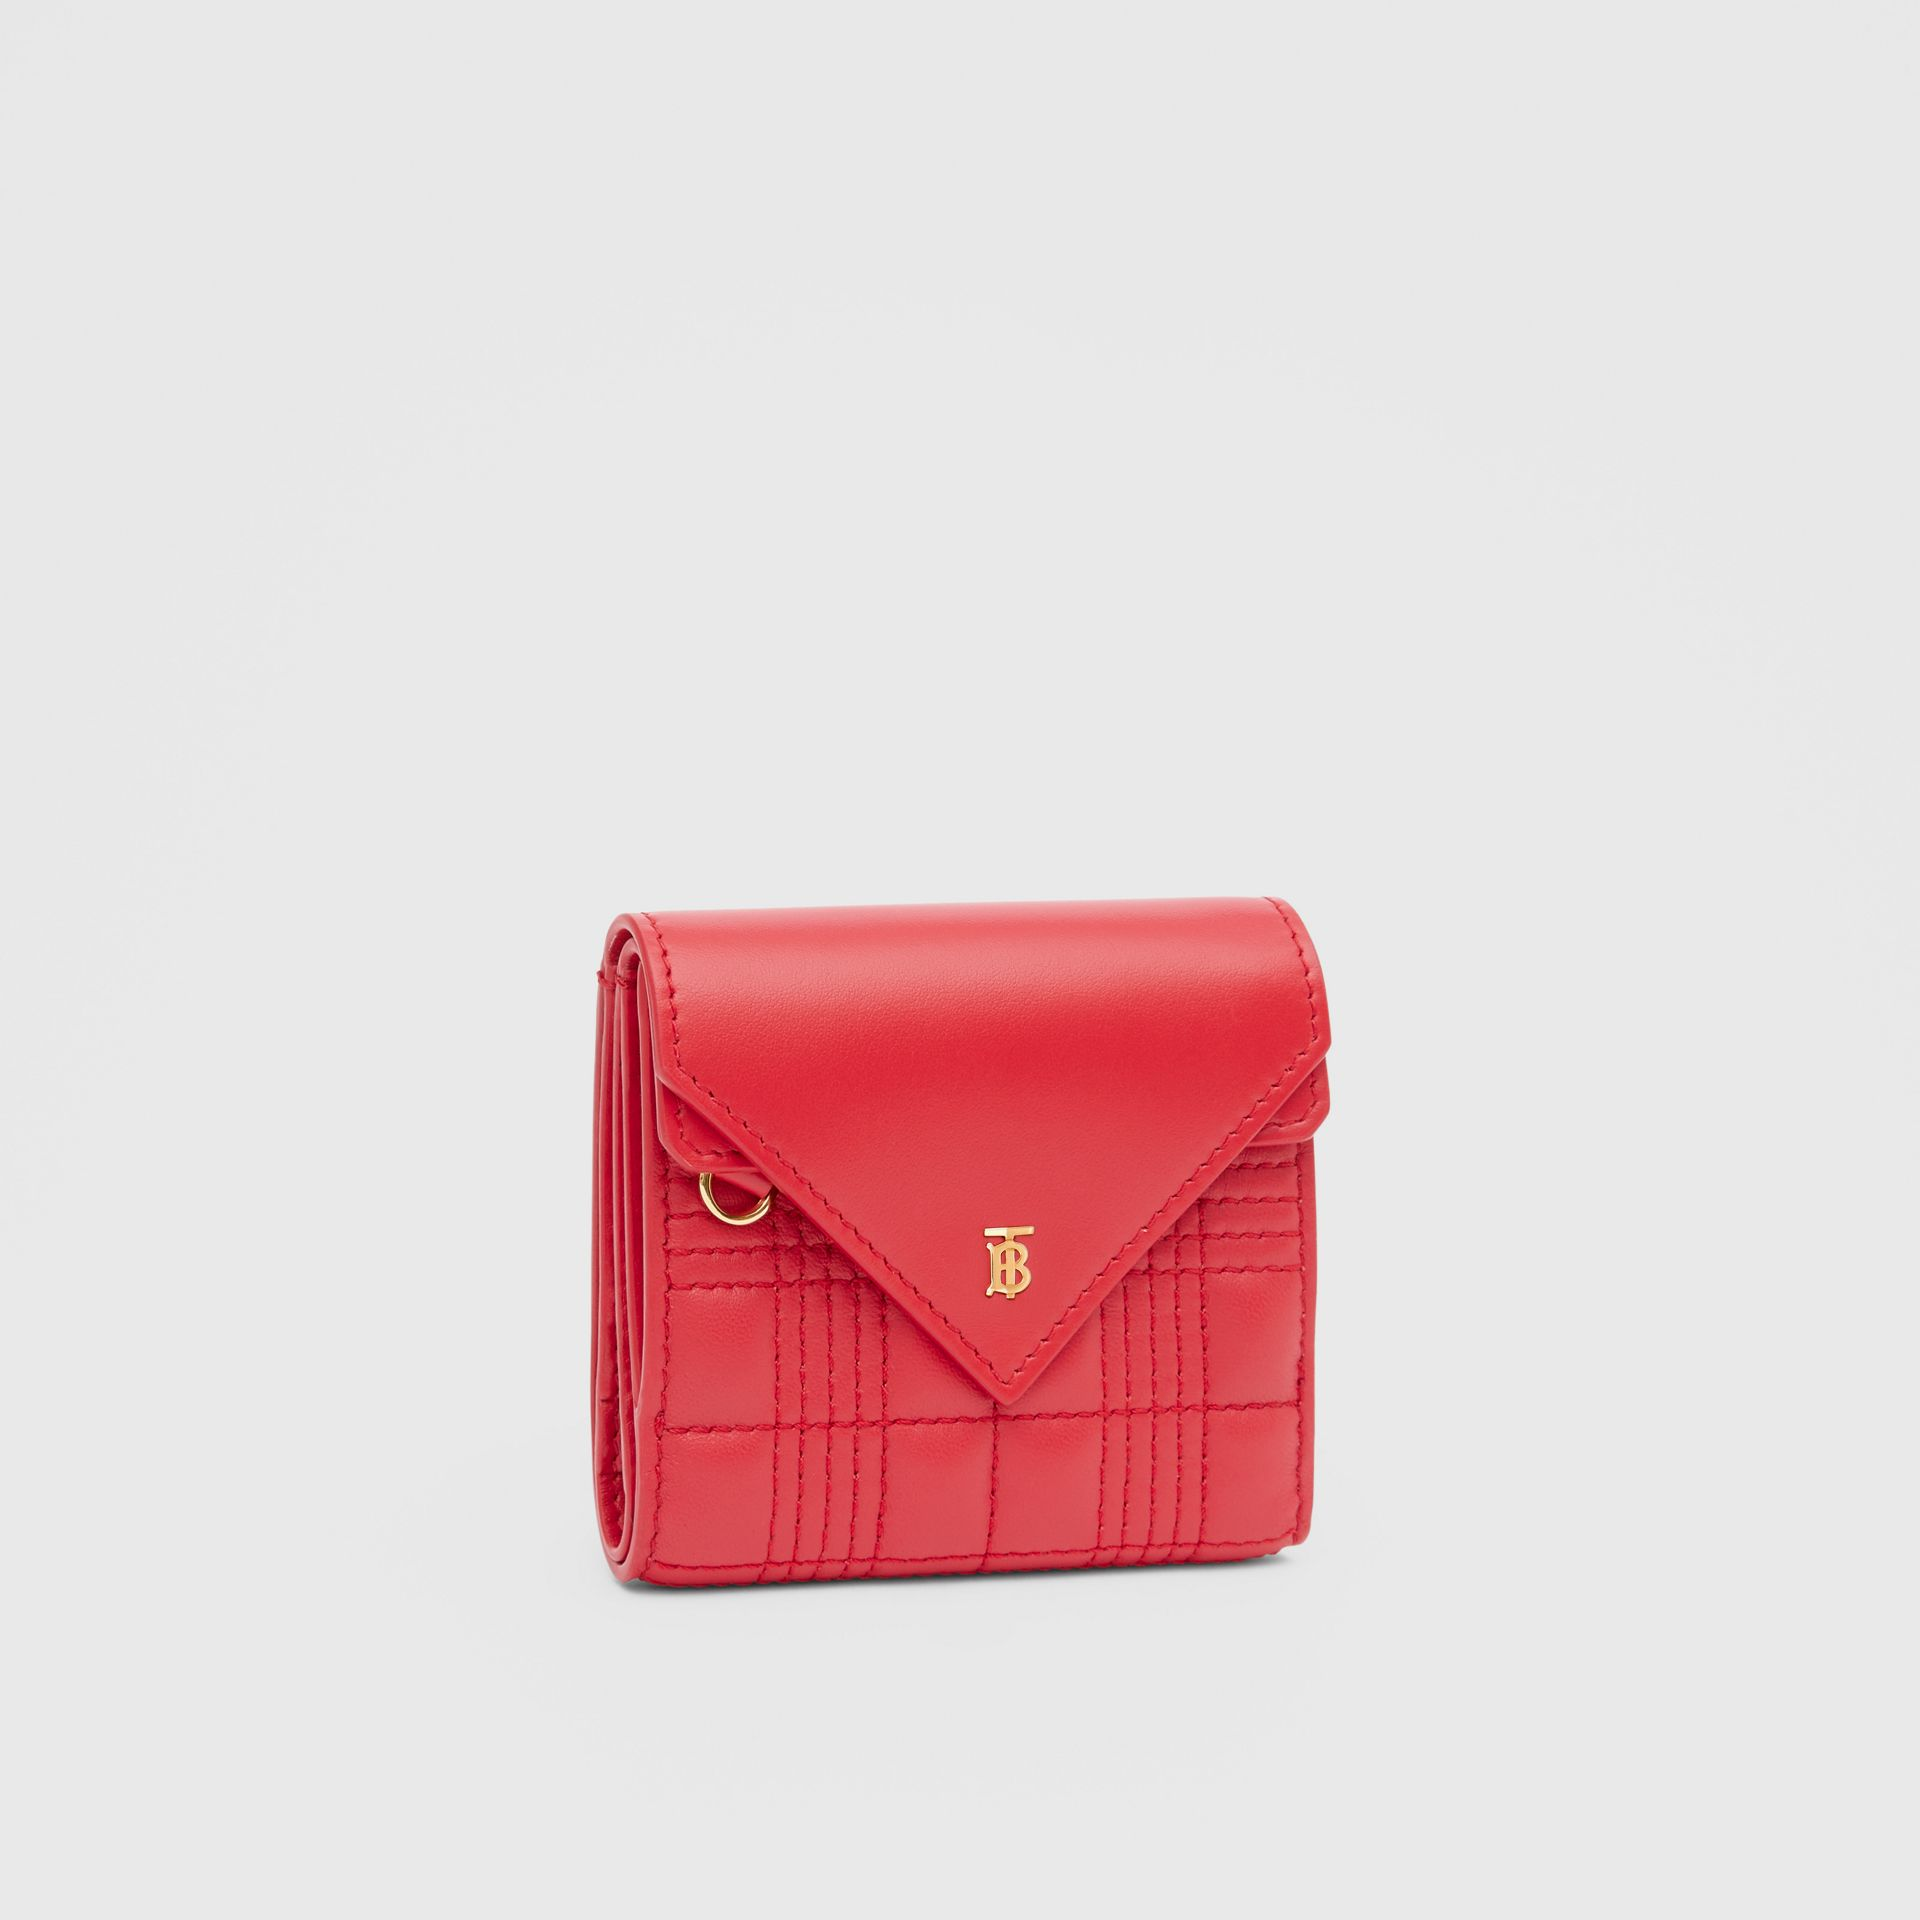 Quilted Lambskin Folding Wallet in Bright Red - Women | Burberry Hong Kong S.A.R - gallery image 3